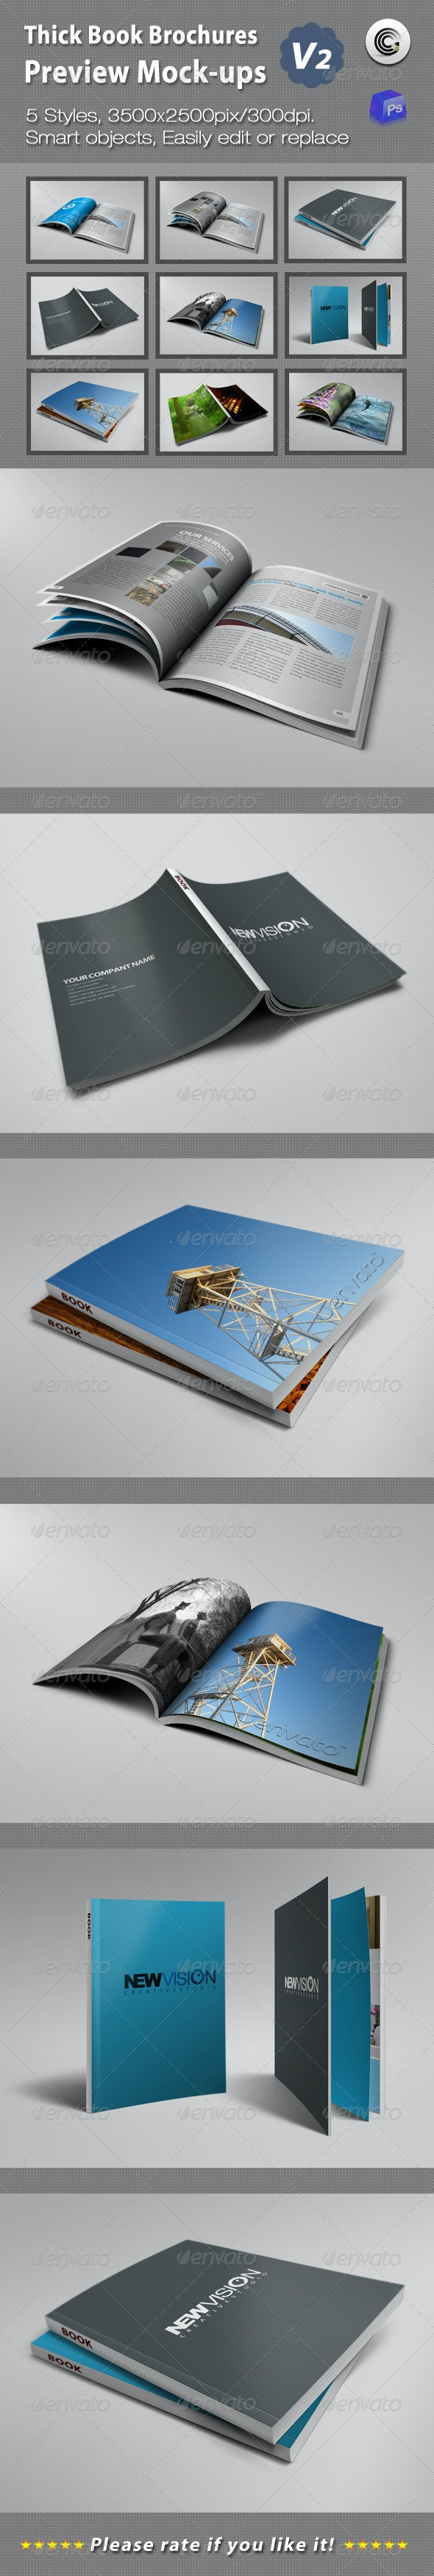 Thick Book Brochures Preview Mock-Ups V2 - Books Print